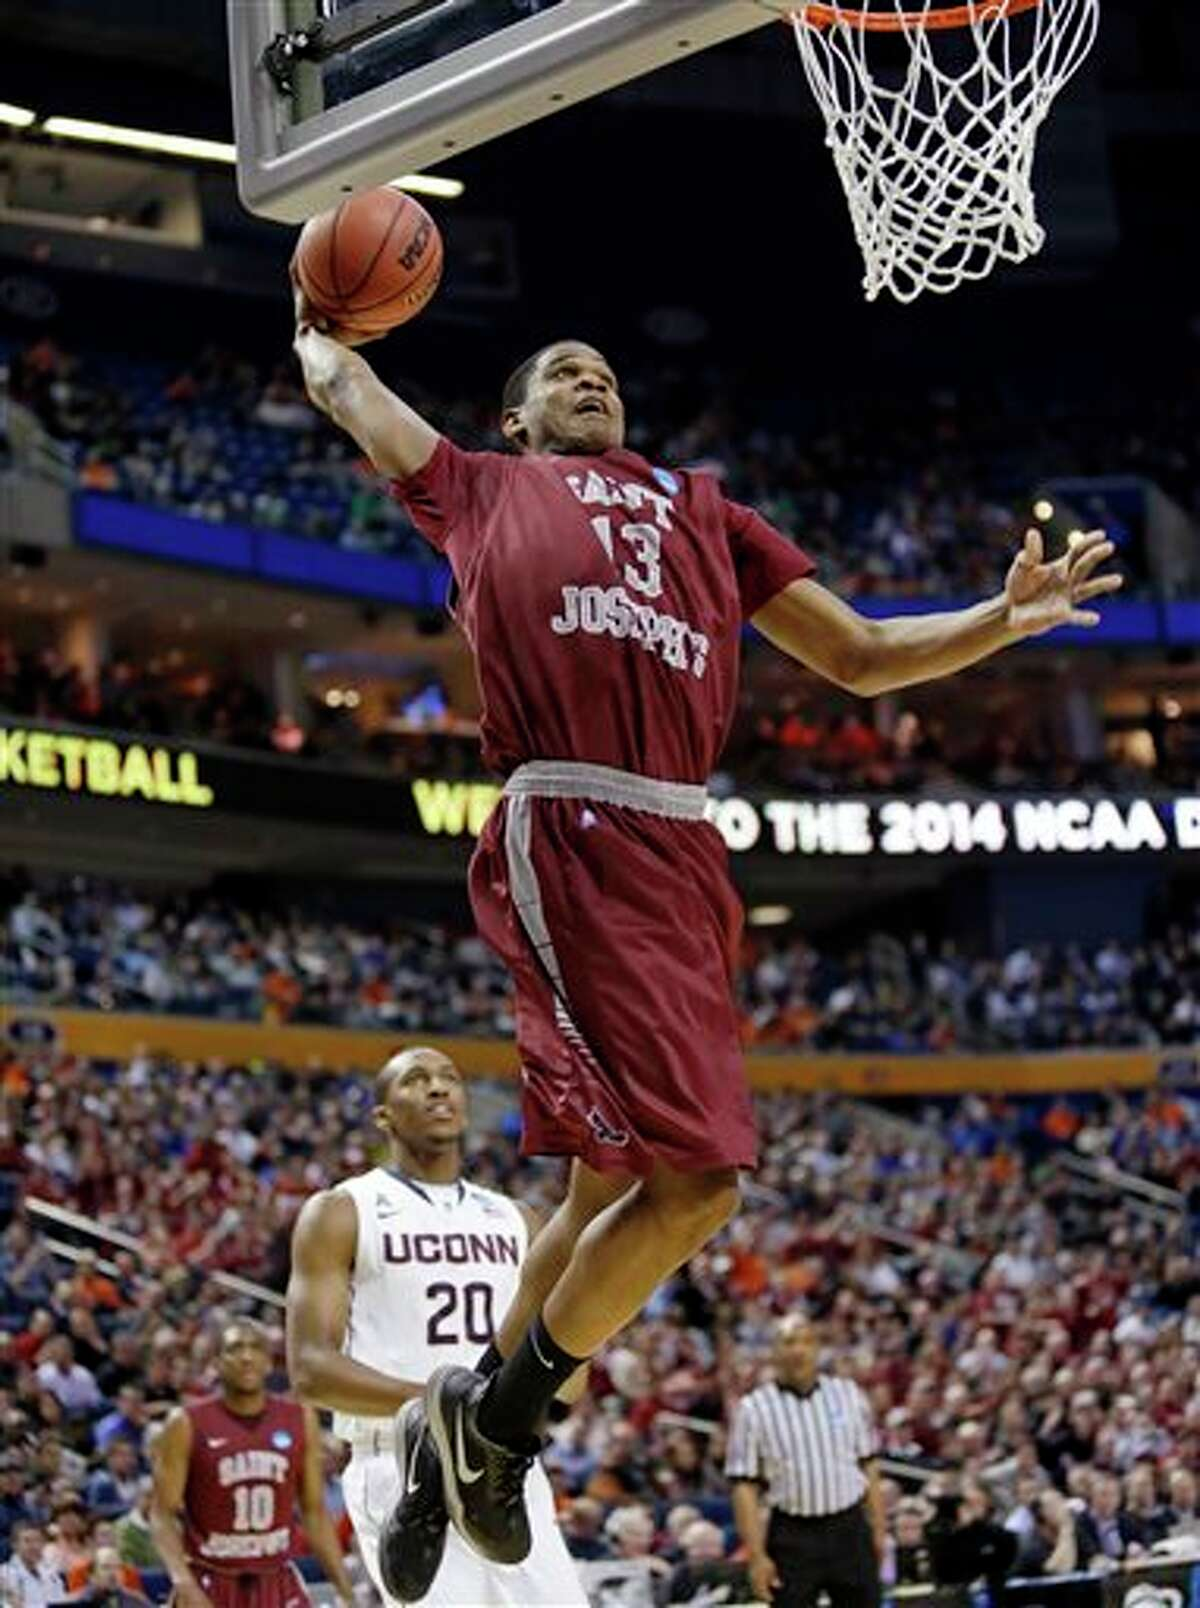 Saint Joseph's Ronald Roberts, Jr. (13) dunks the ball in front of Connecticut's Lasan Kromah (20) during the first half of a second-round game in the NCAA college basketball tournament in Buffalo, N.Y., Thursday, March 20, 2014. (AP Photo/Nick LoVerde)